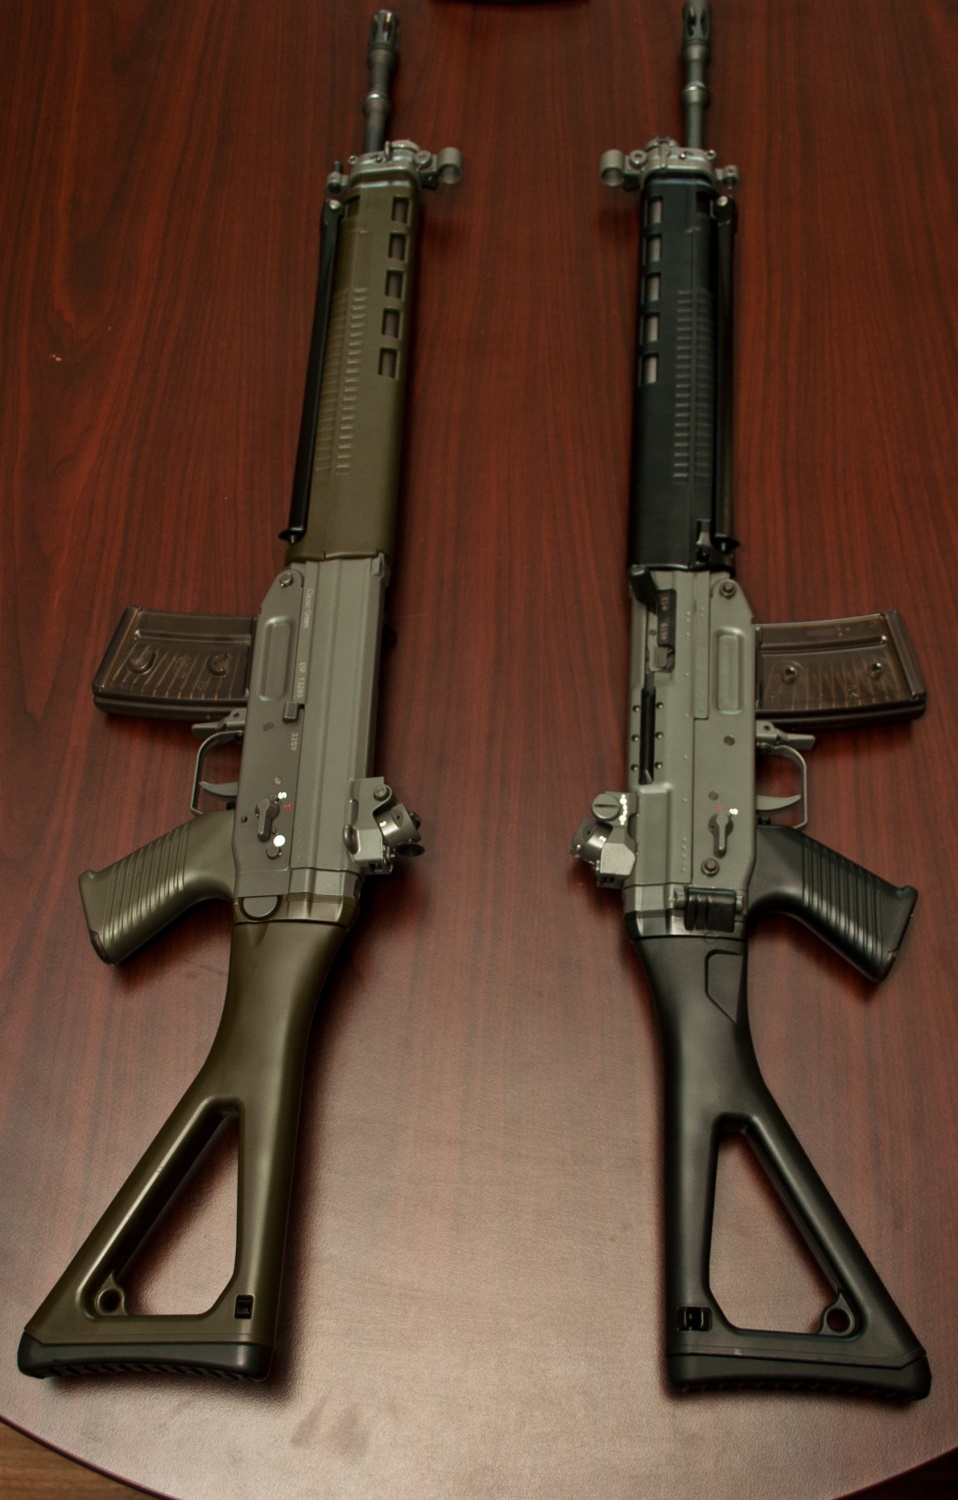 Swiss Arms And Cz858 Prohibition Reversed Canadian Timeline Amp Gallery The Firearm Blog